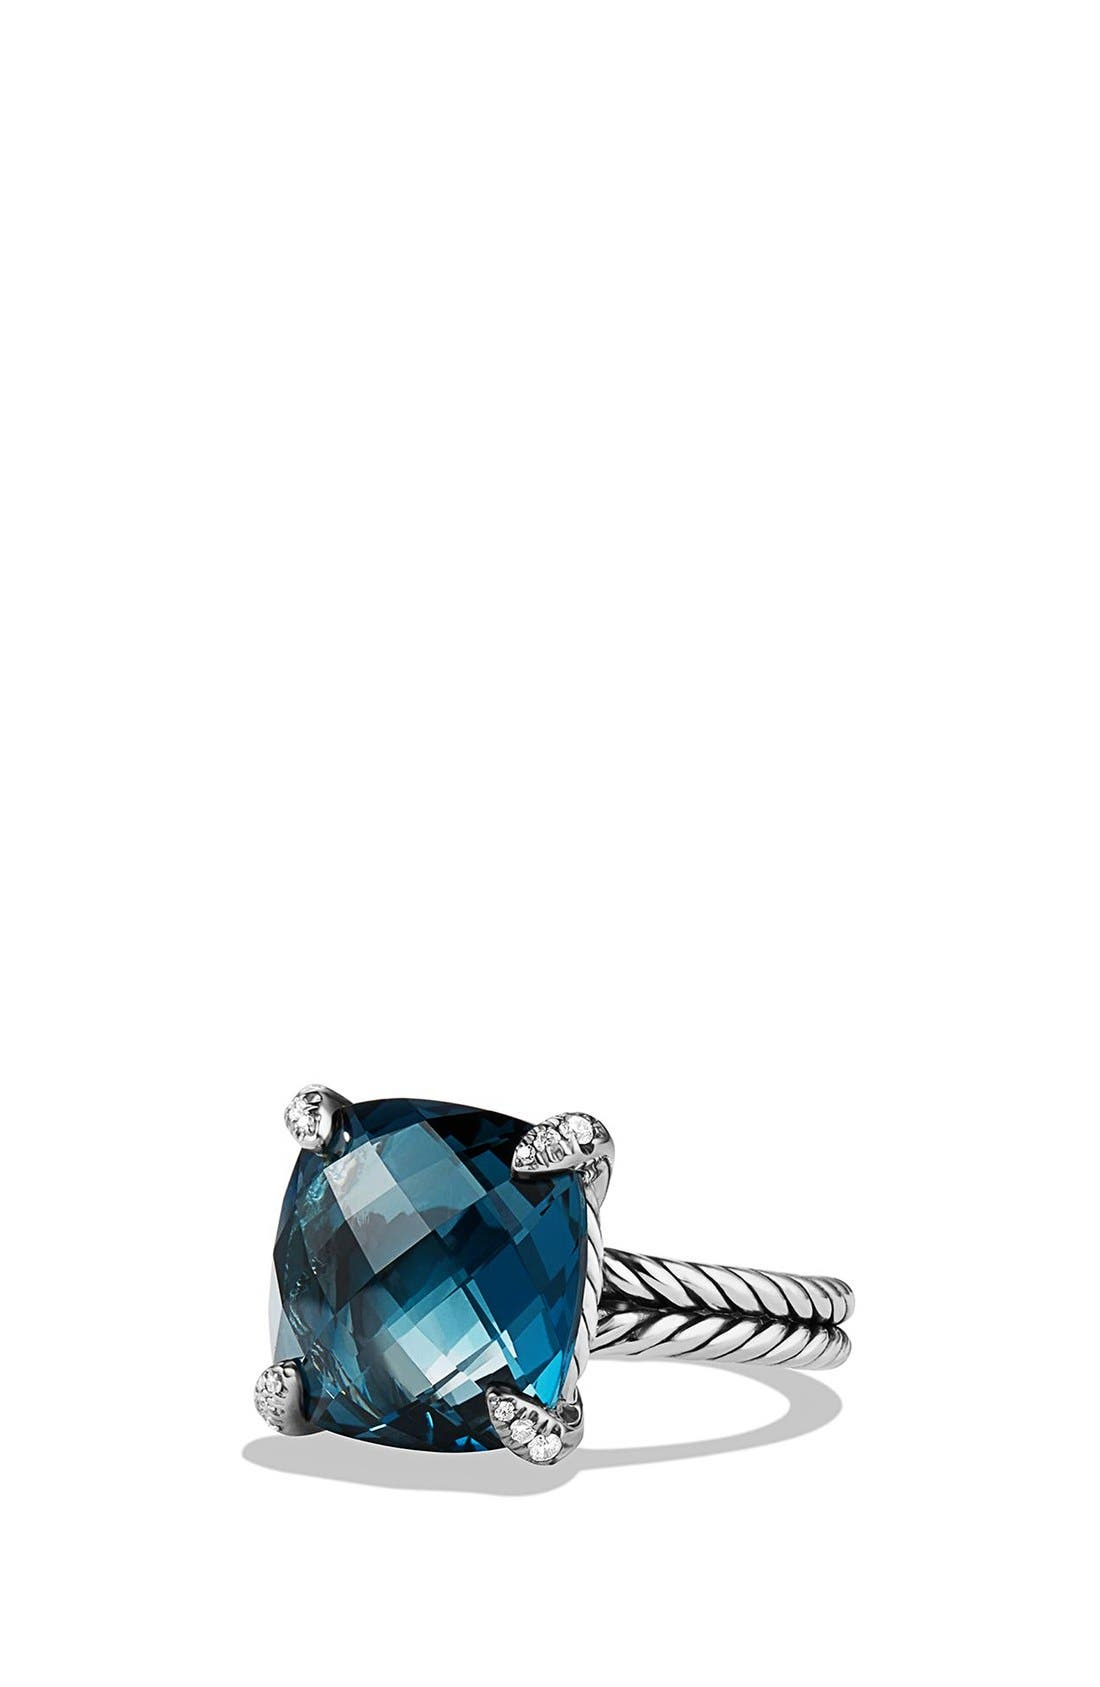 'Châtelaine' Ring with Semiprecious Stone and Diamonds,                             Main thumbnail 1, color,                             Silver/ Hampton Blue Topaz